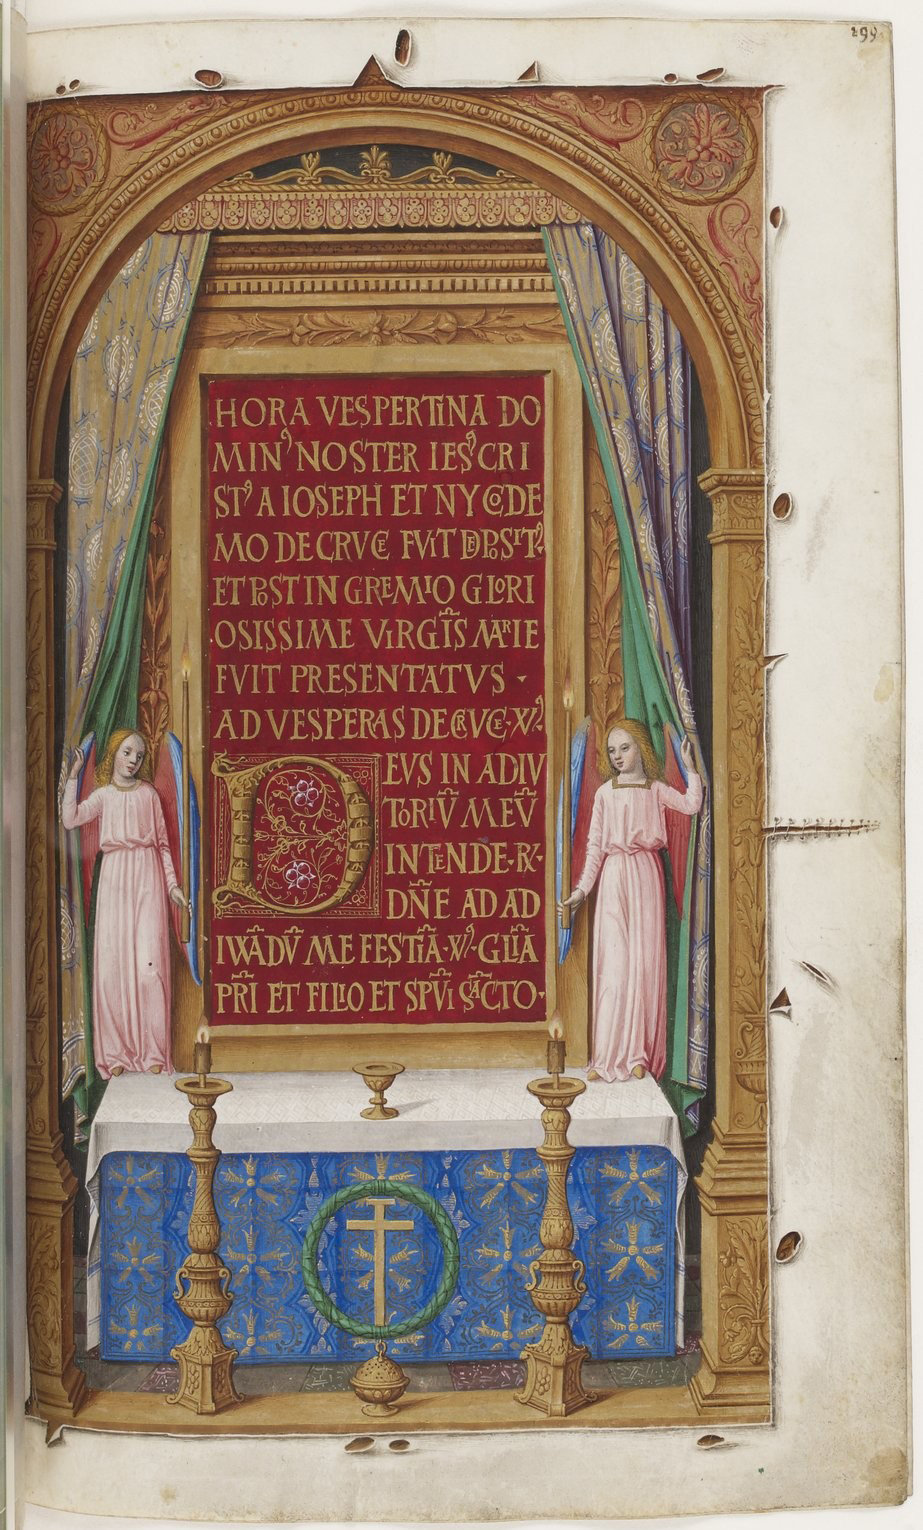 Book of hours of Frederic of Aragon f203, Tours, ca. 1501-1502, French National Library, Manuscripts, 10532 Parchment, 388 p., 255 x 170 mm, In Copyright